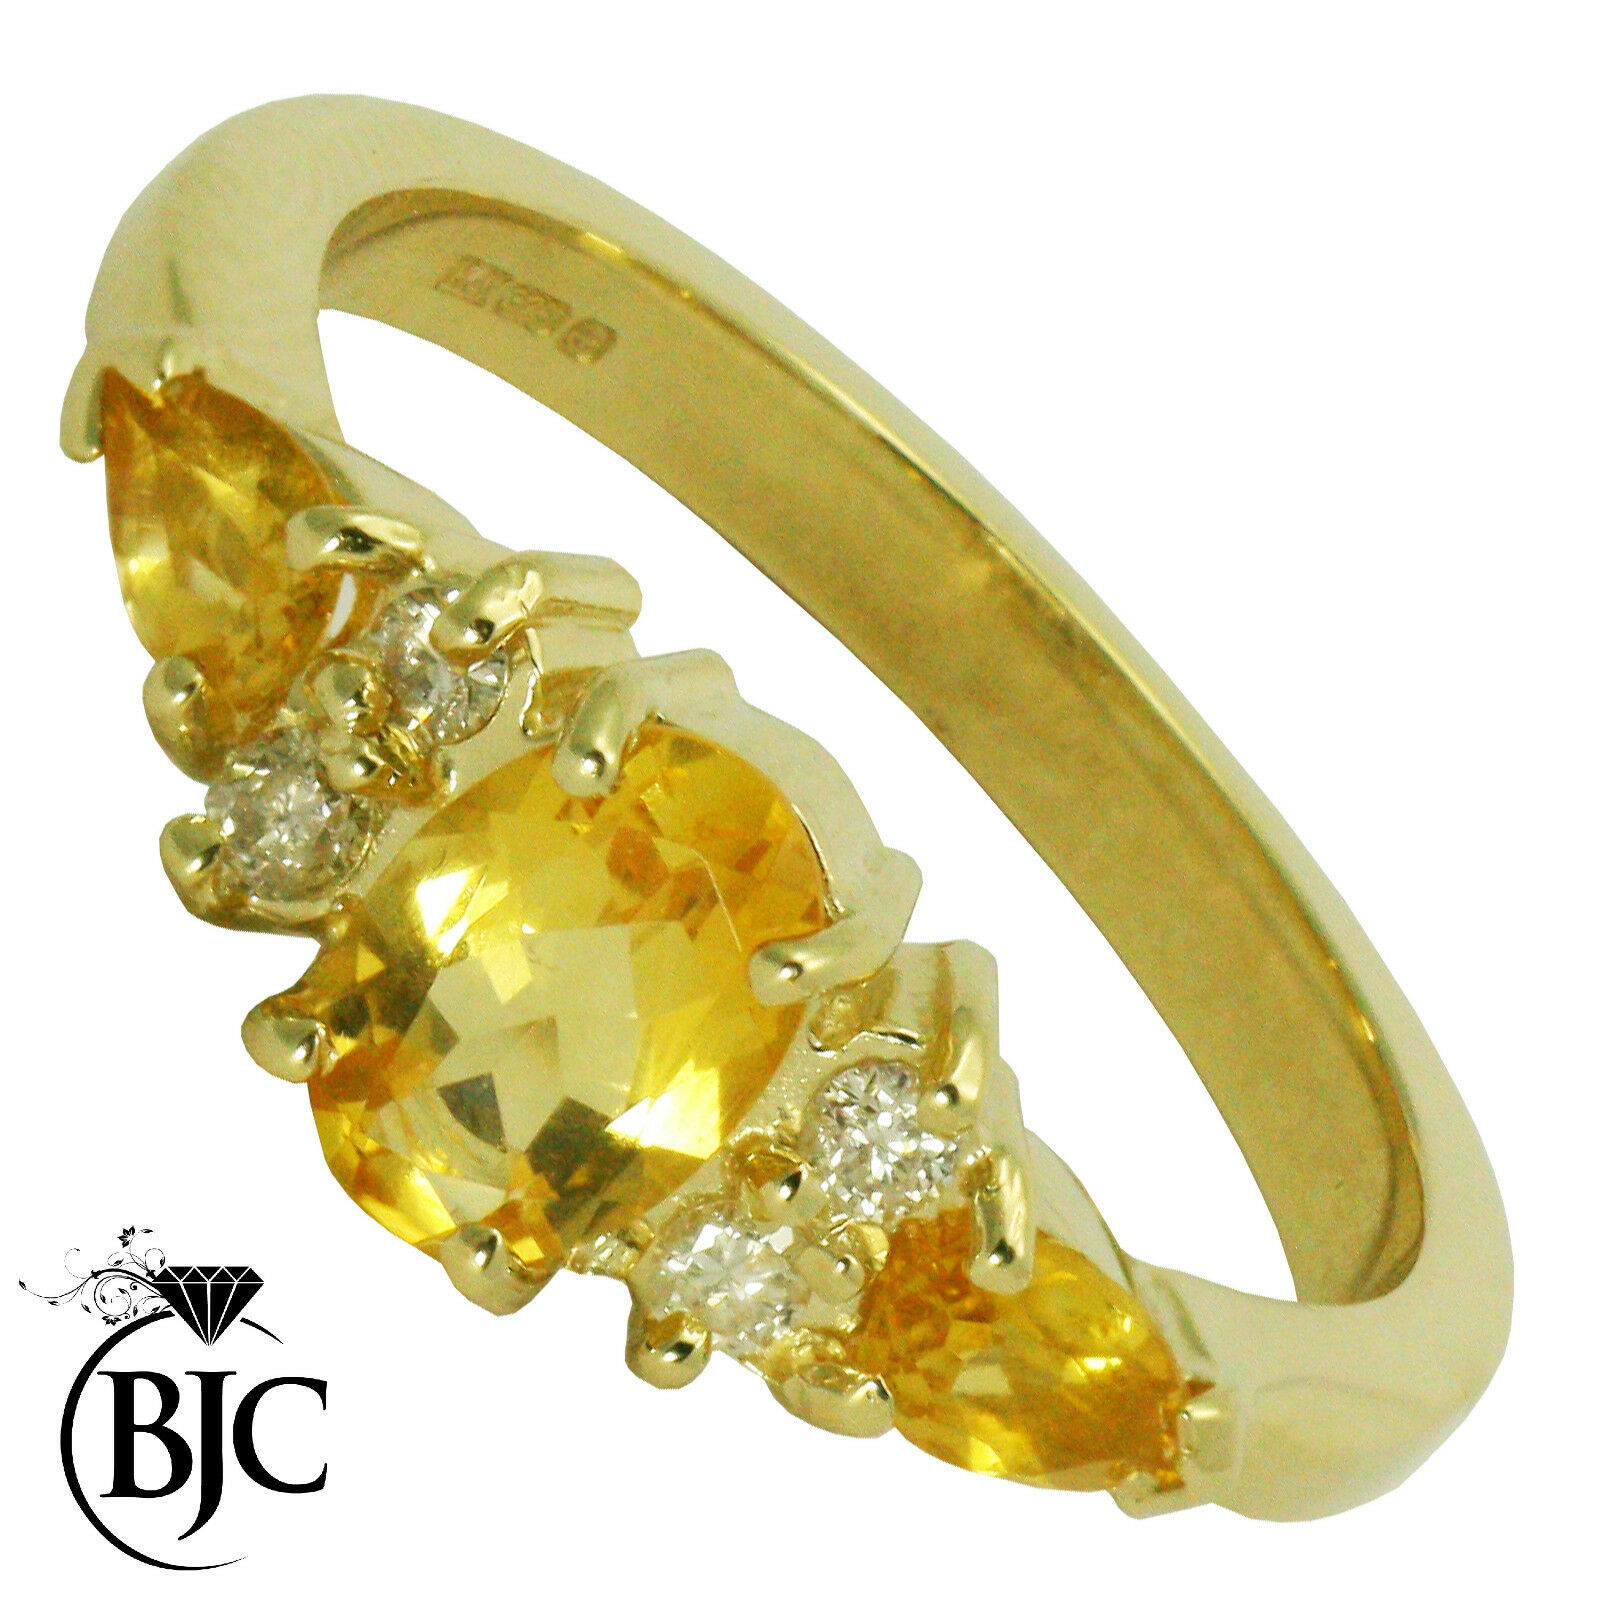 BJC 9 Ct Or yellow Citrine & DIAMANT size O fiançailles Robe Bague R178